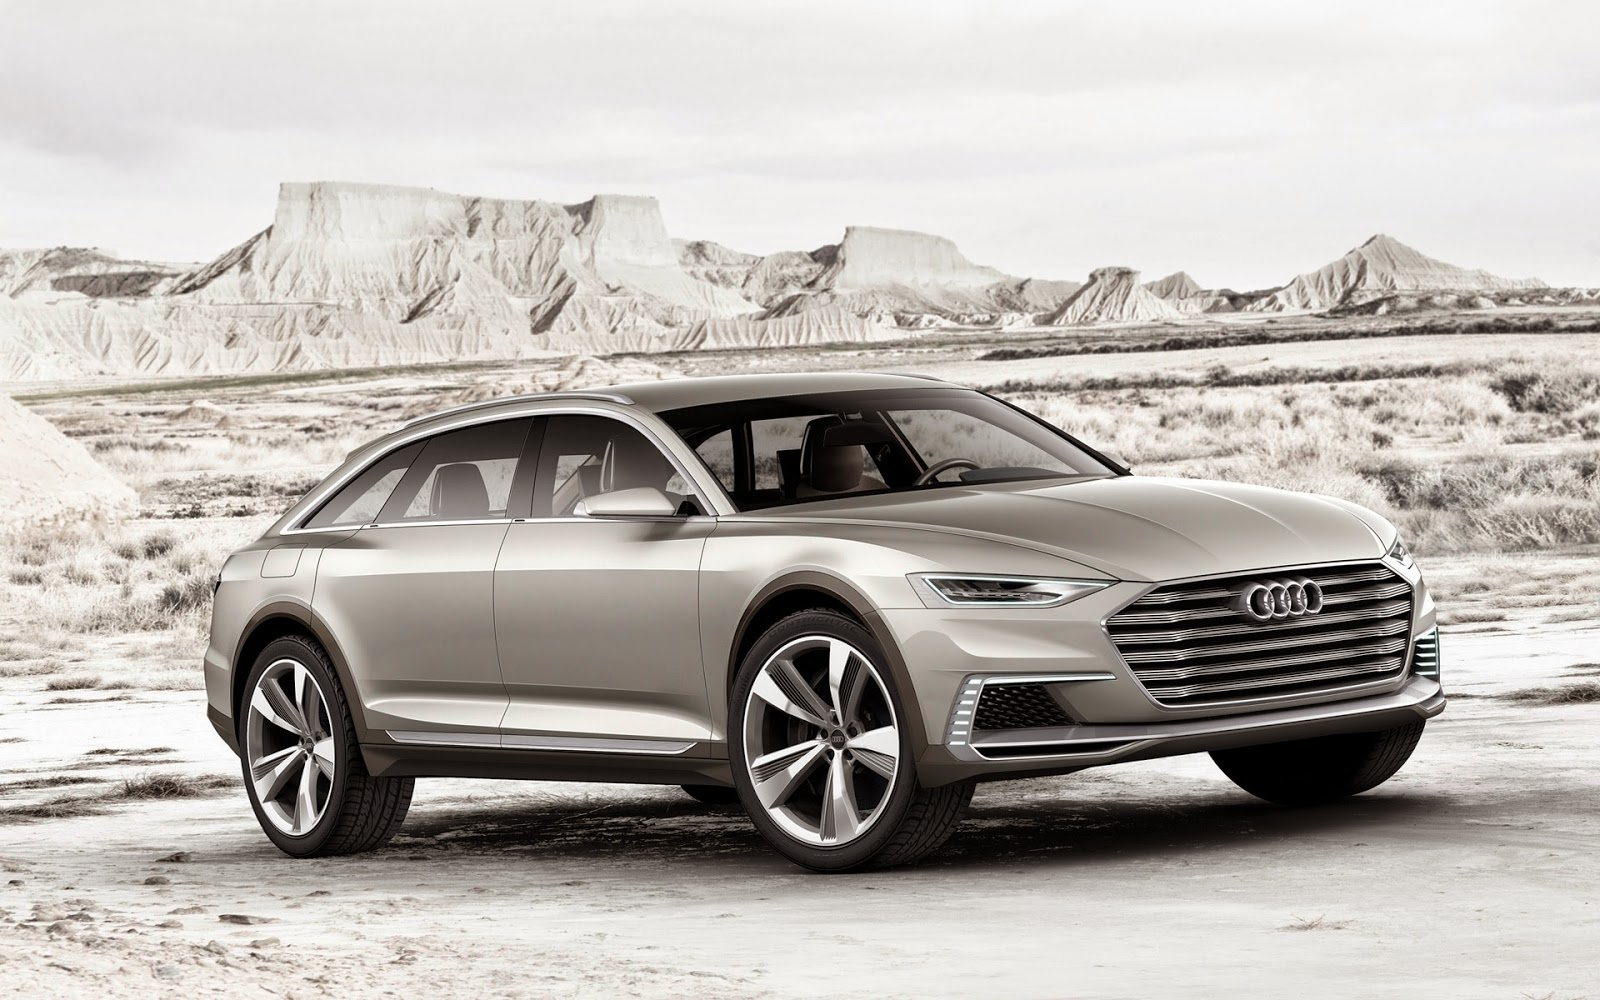 viewedfrom the side the meter 16 8 ft audi prologue allroad displays the new dynamic. Black Bedroom Furniture Sets. Home Design Ideas